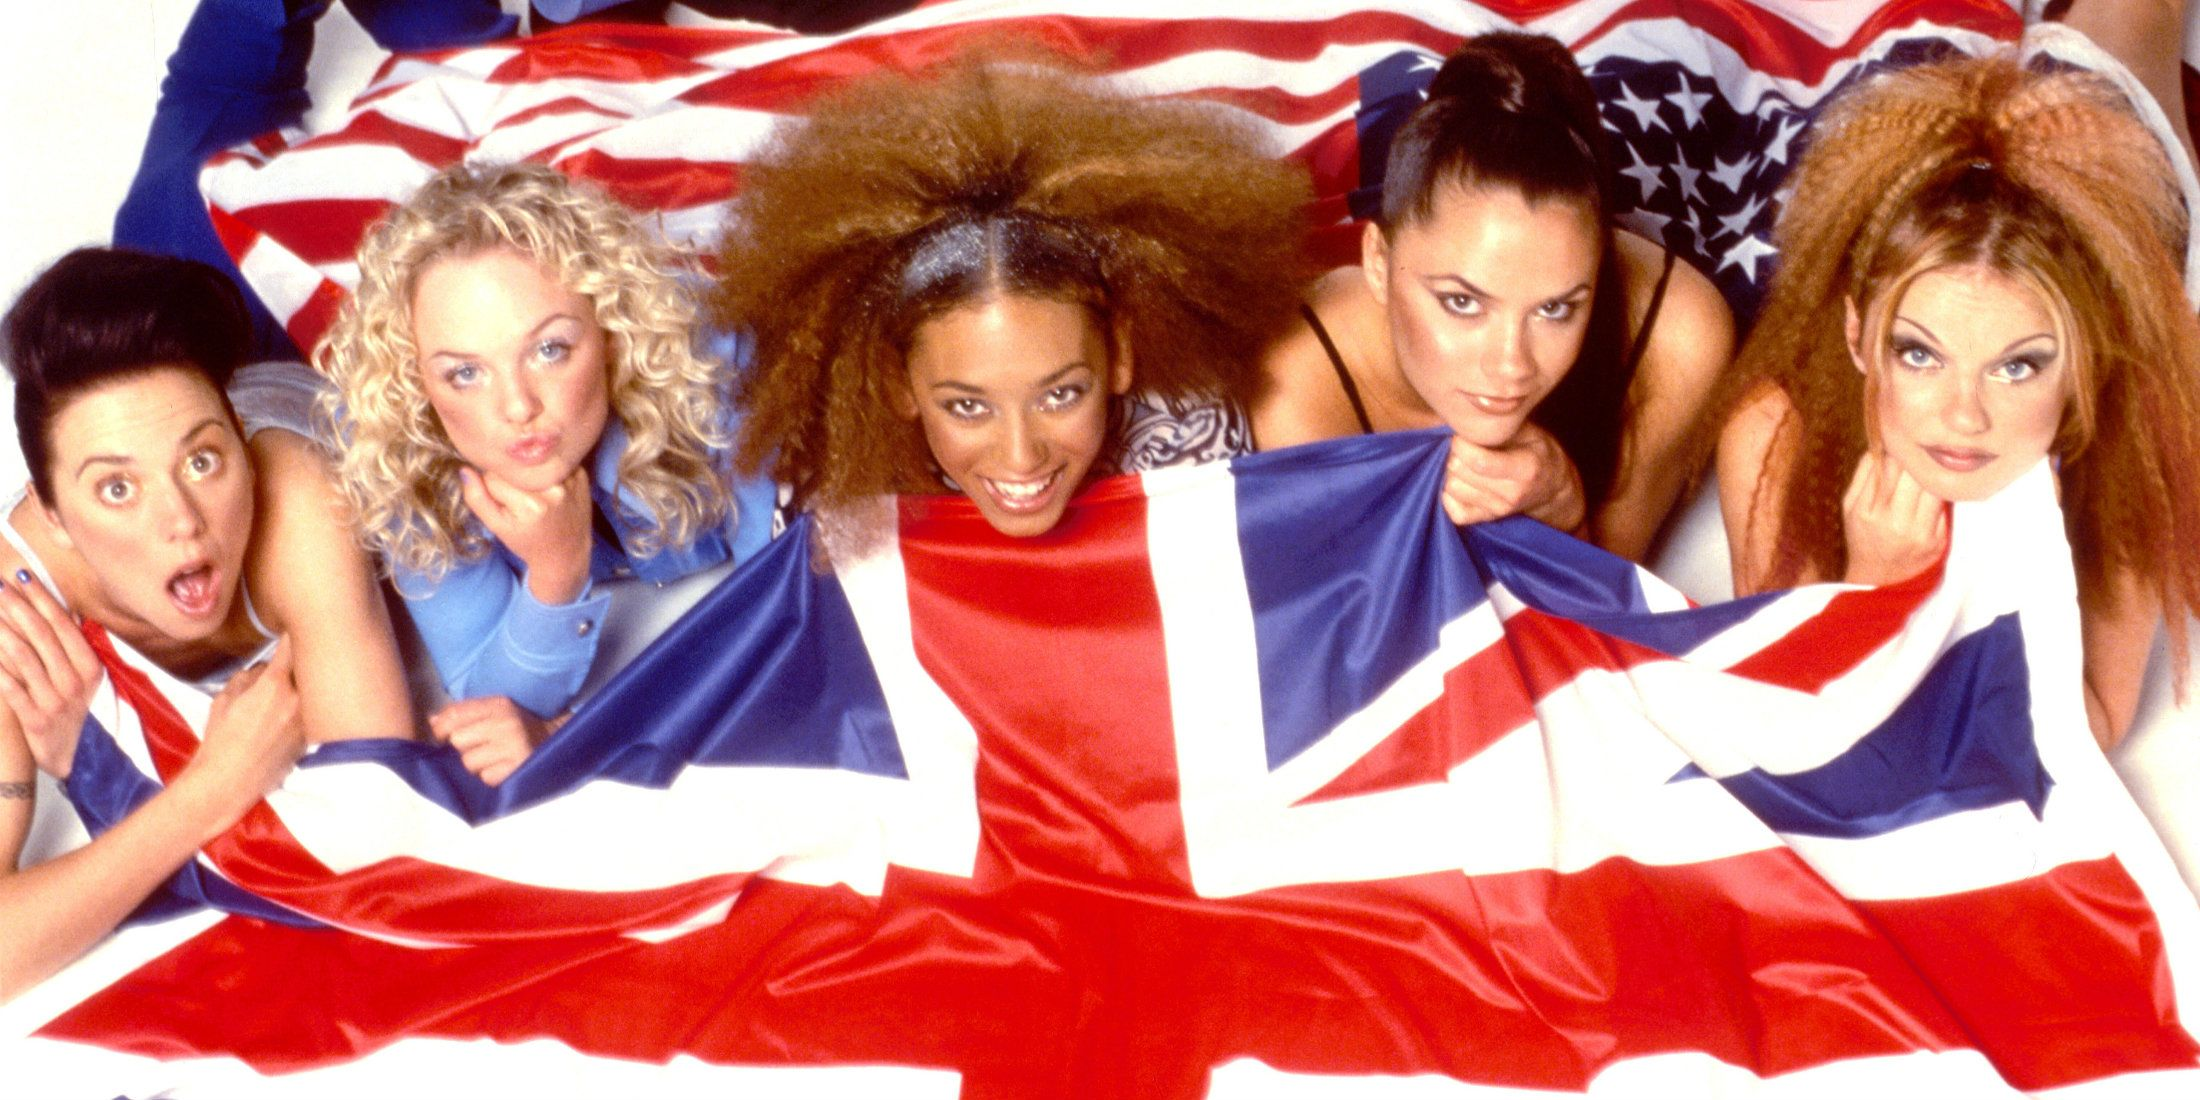 The Spice Girls Are Getting An Animated Superhero Movie